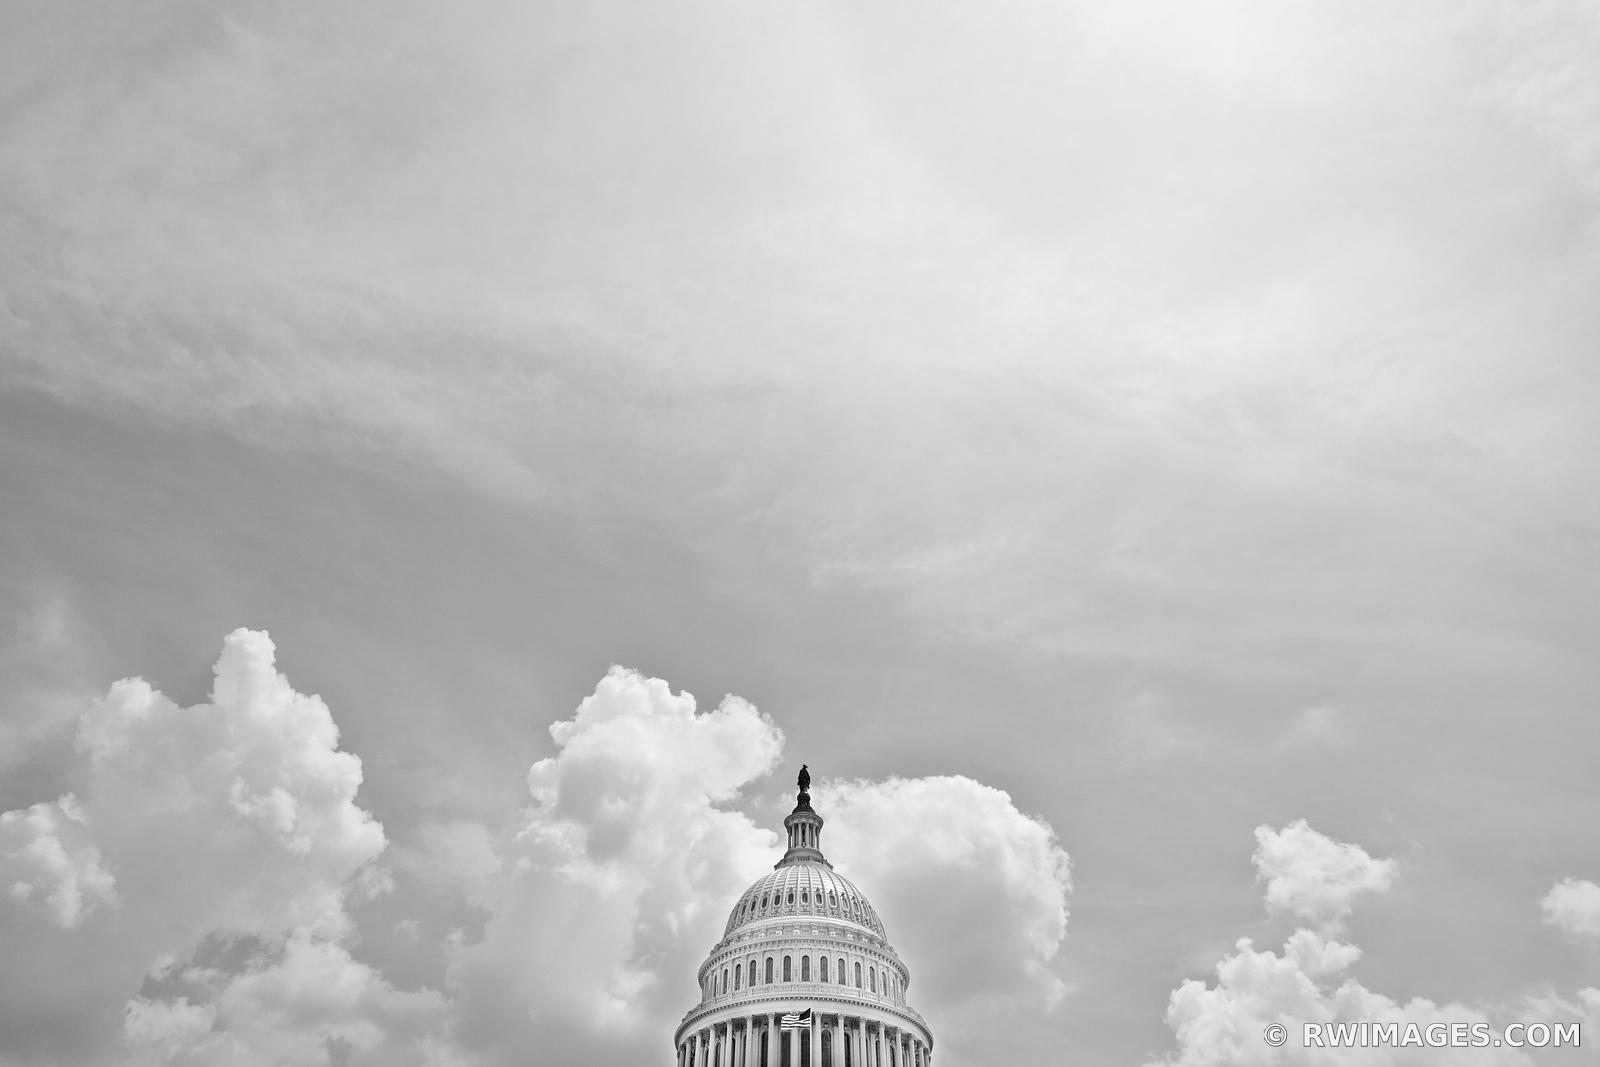 US CAPITOL DOME WASHINGTON DC BLACK AND WHITE